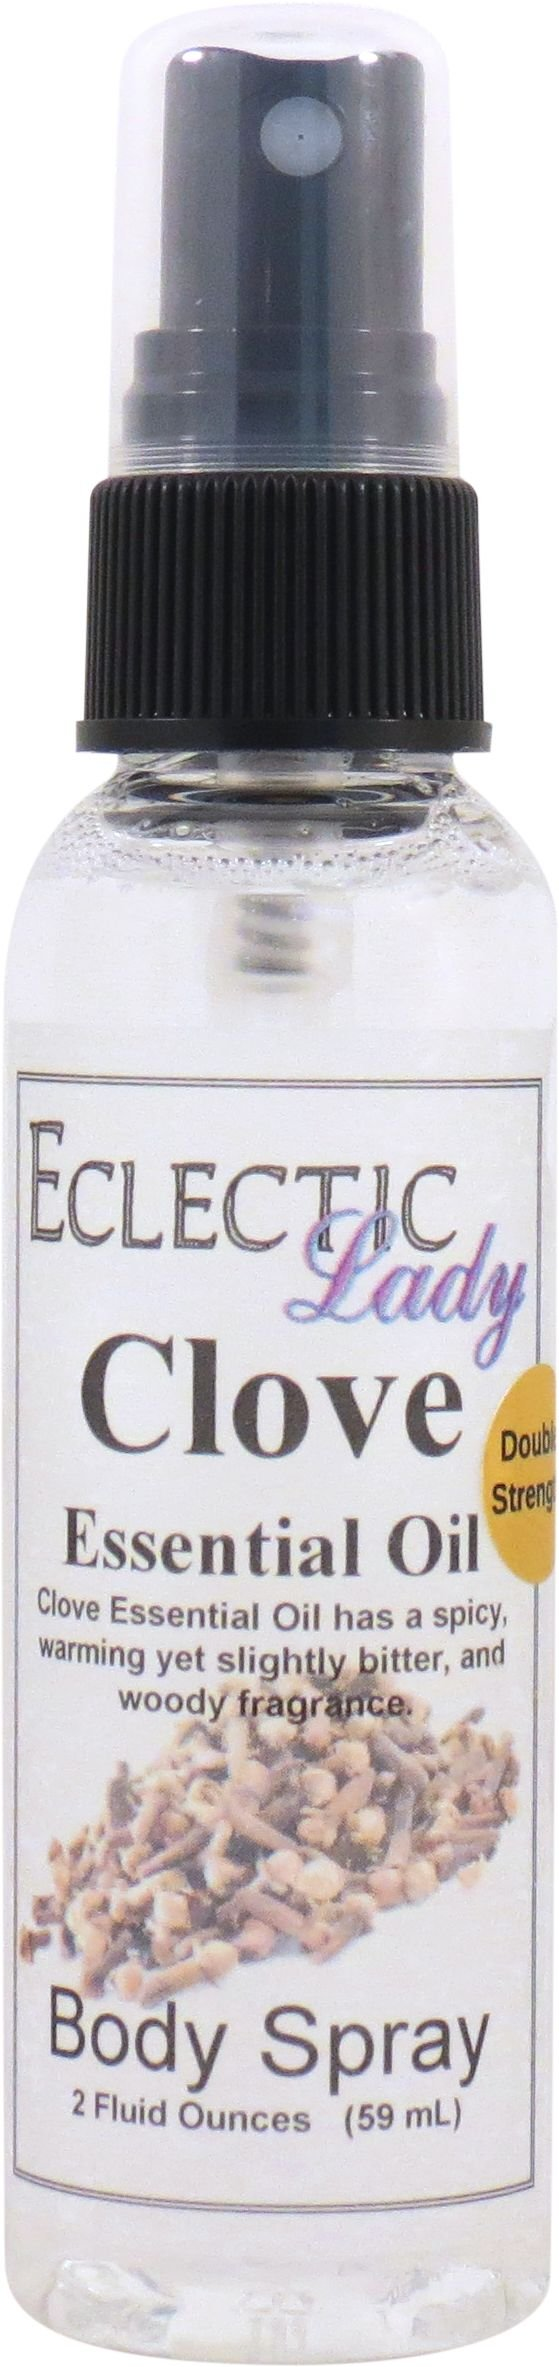 Clove Essential Oil Body Spray (Double Strength), 2 ounces by Eclectic Lady